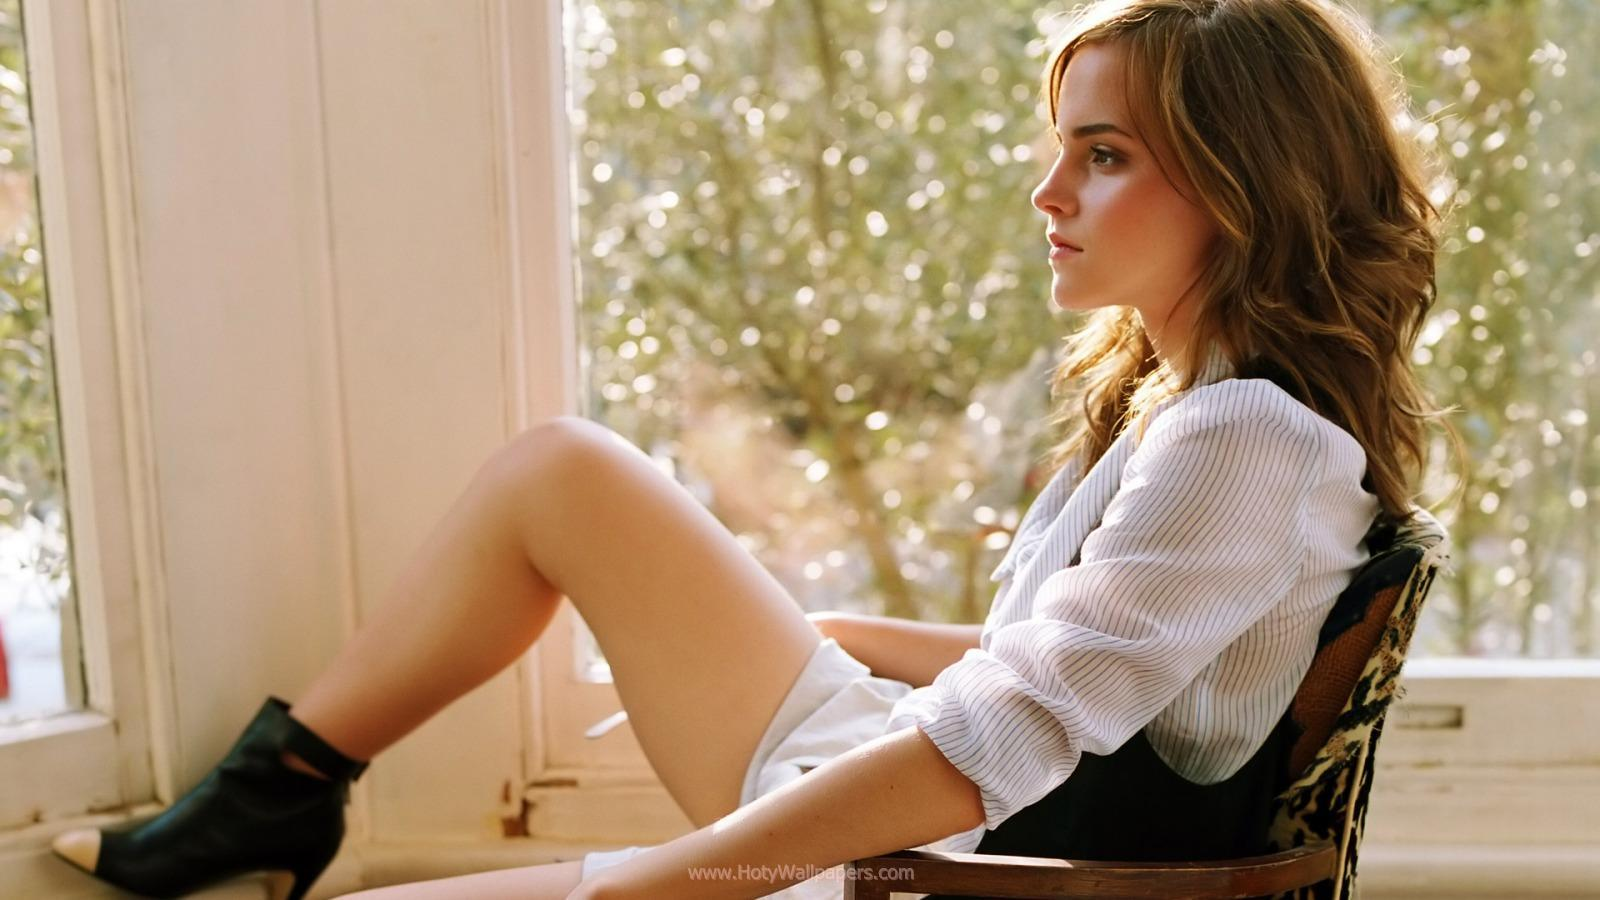 hollywood wide screen hot wallpapers